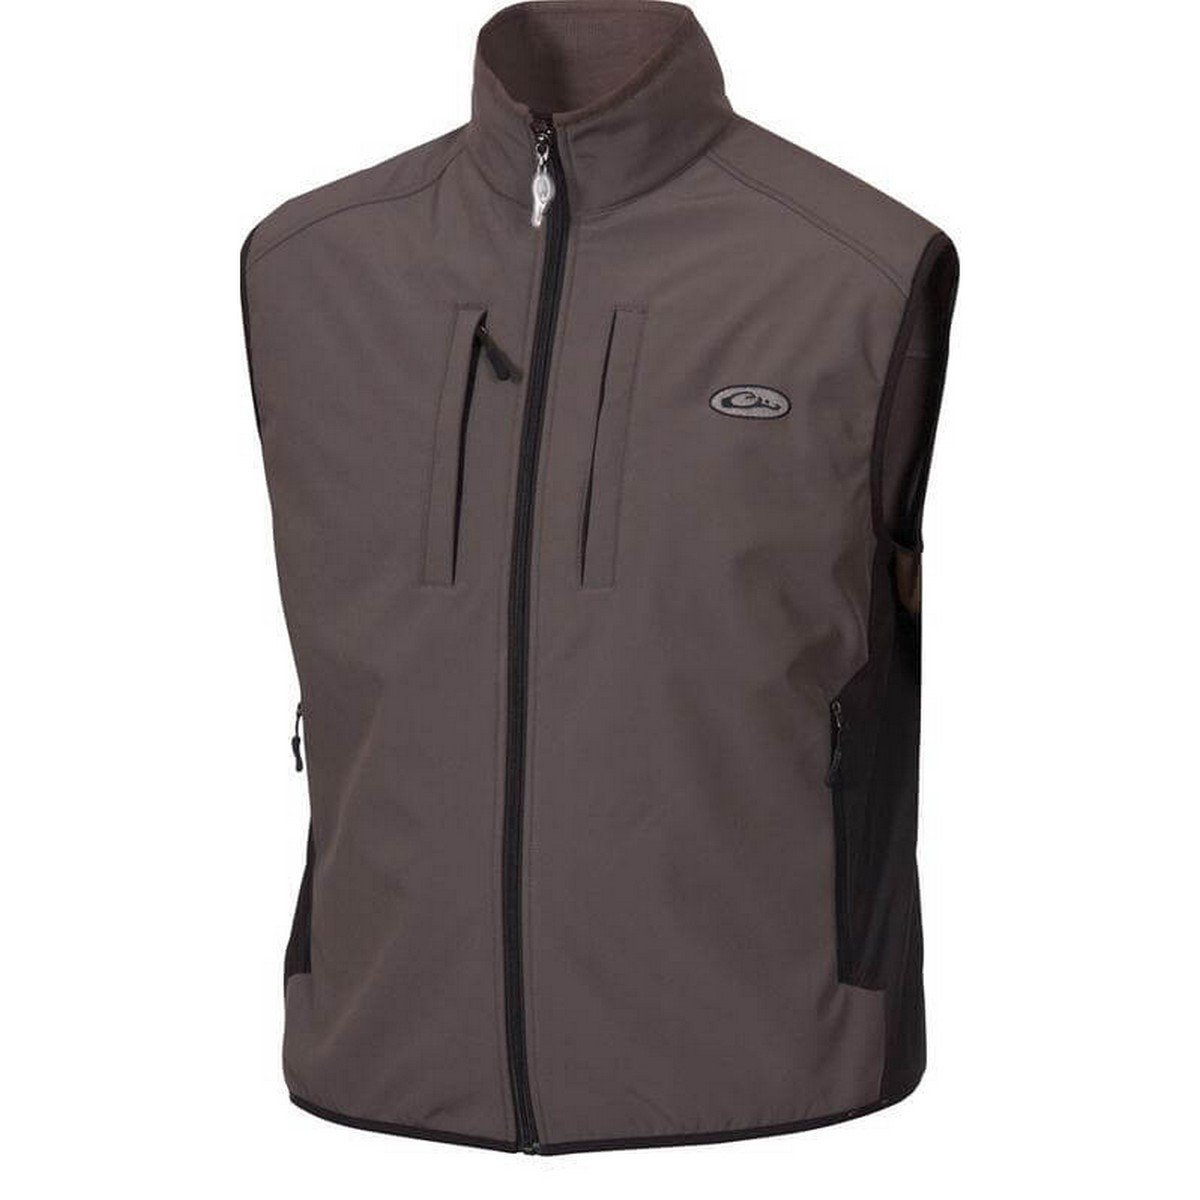 Drake Windproof Tech Vest, Color: Gray, Size: Medium (DW1602-GRY-2) by Drake